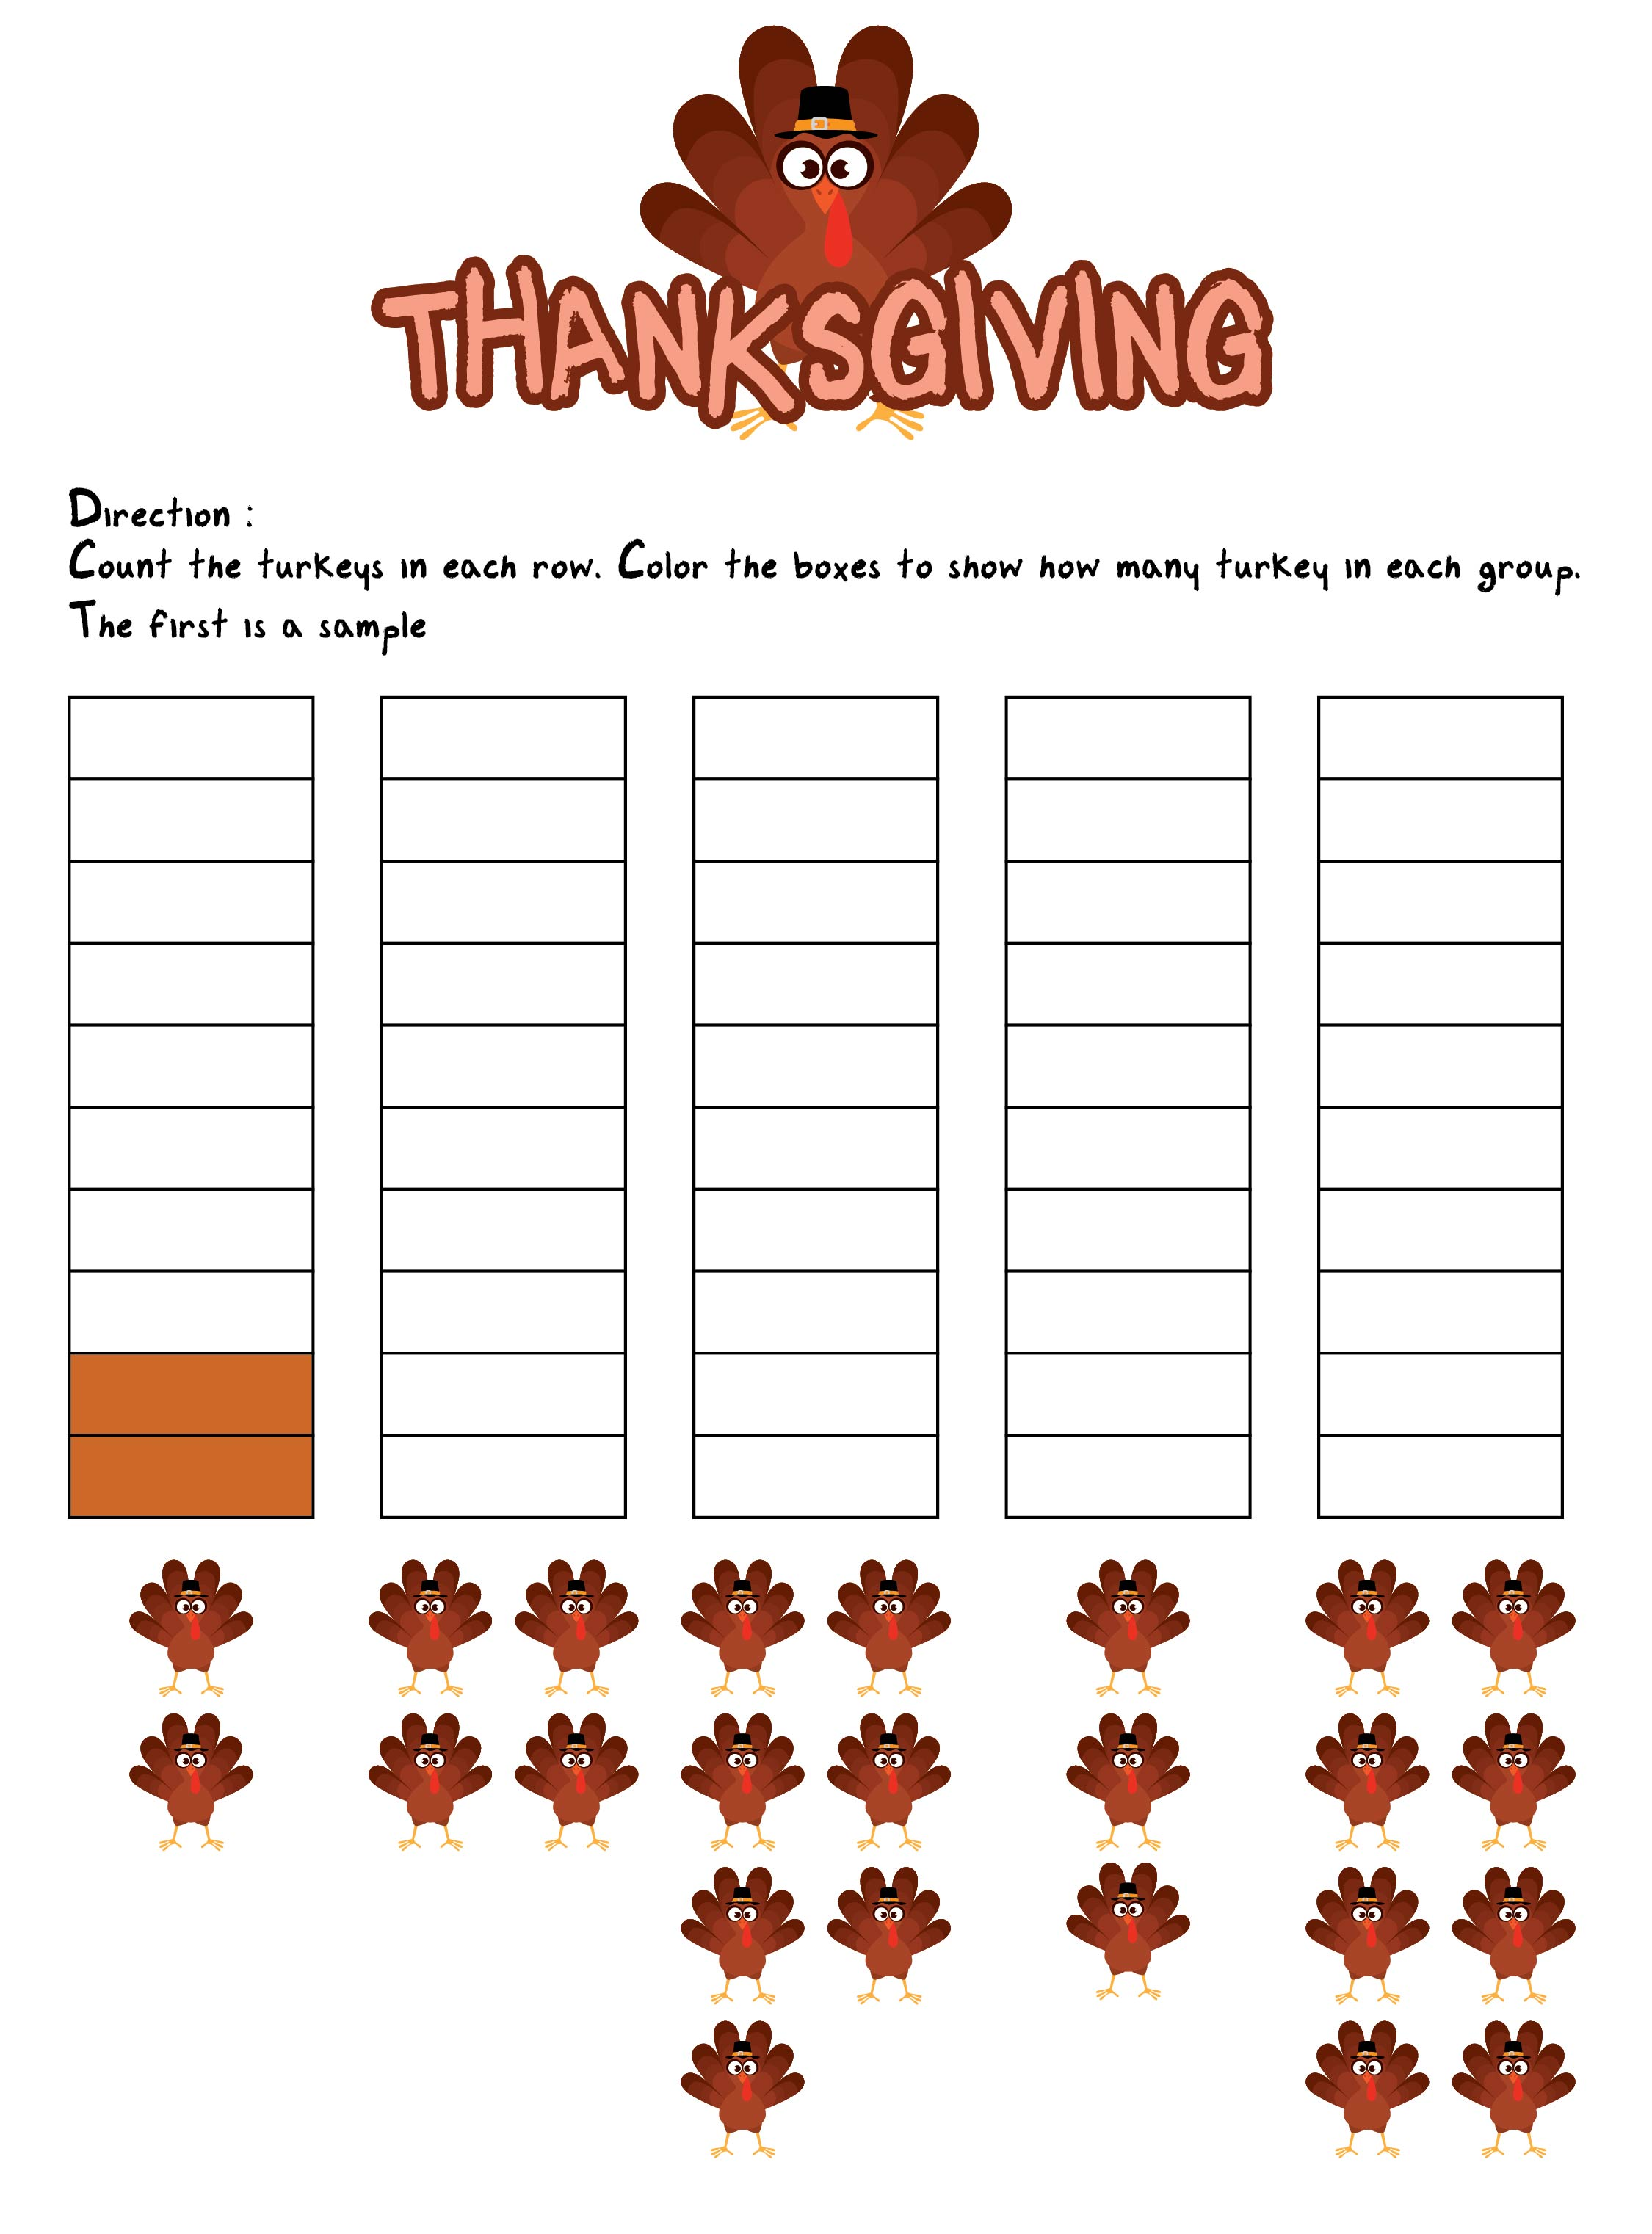 Thanksgiving Printable Images Gallery Category Page 3